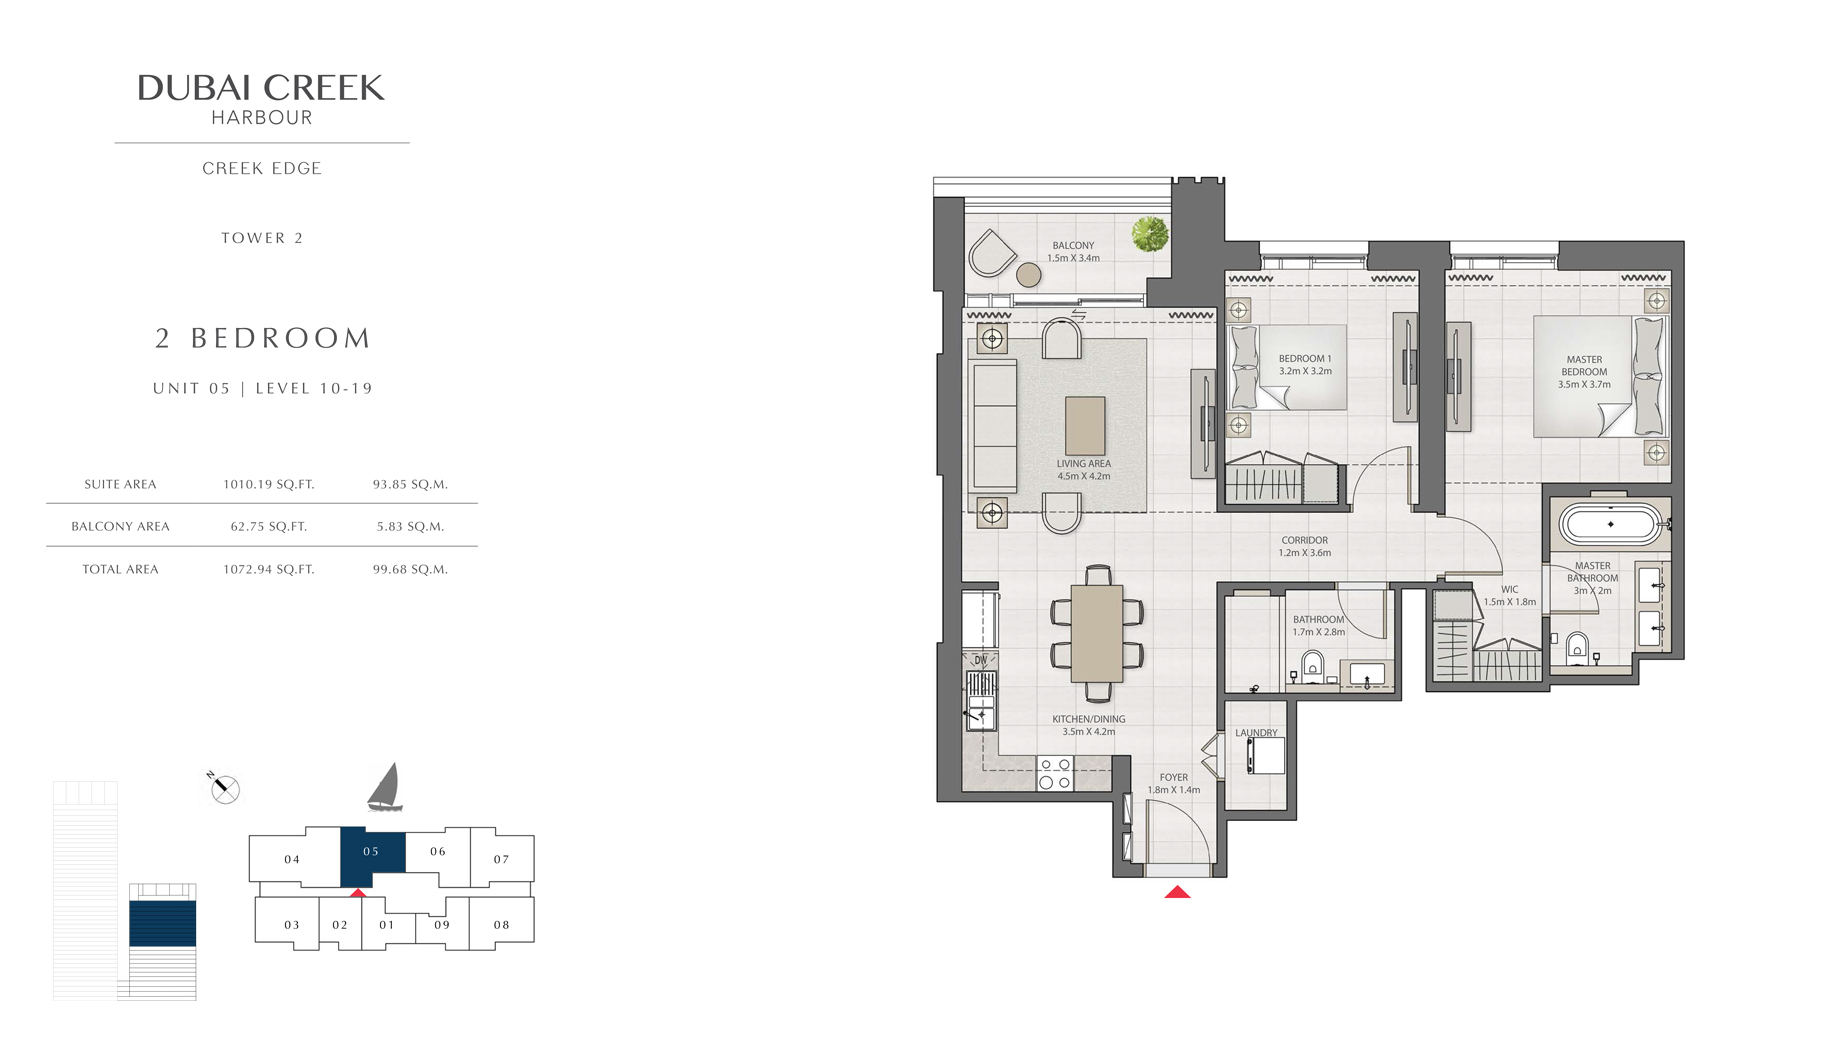 2 Bedroom Tower 2 Unit 05 Level 10-19 Size 1072 sq.ft